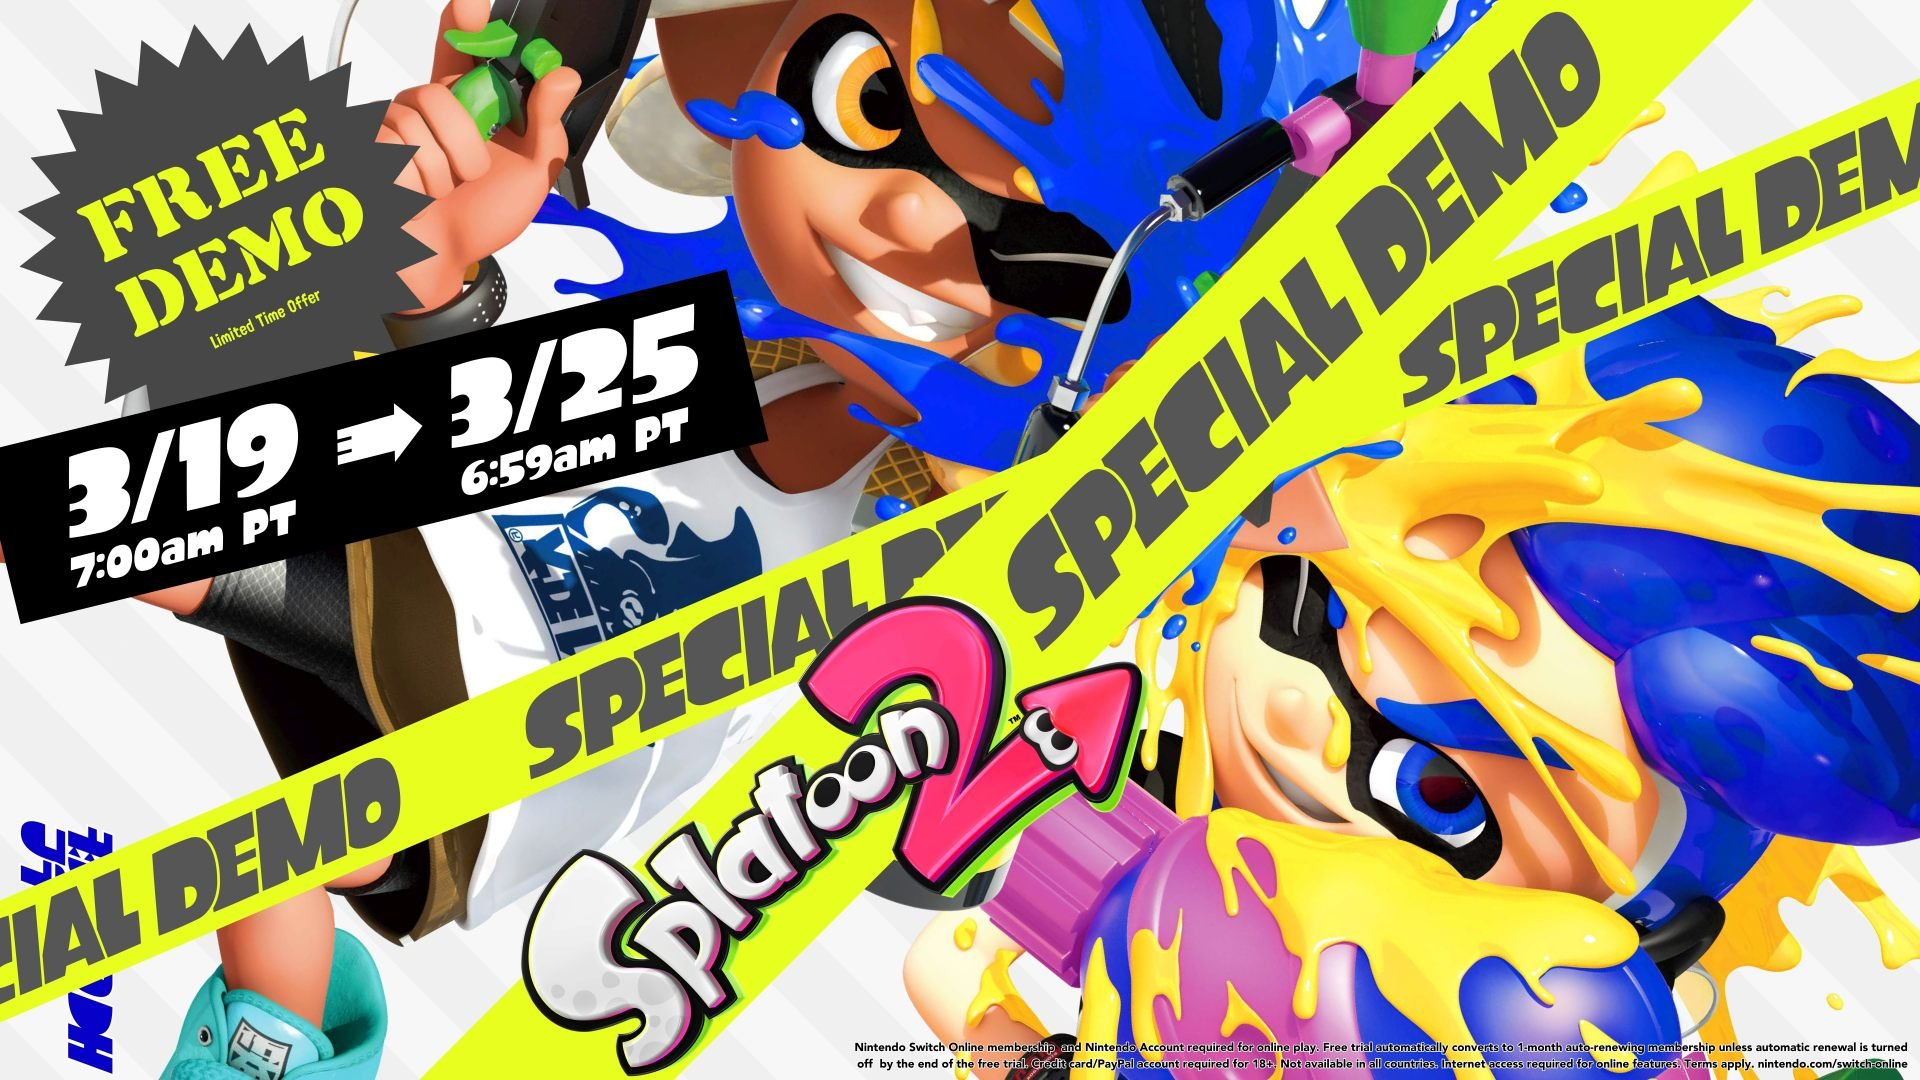 Splatoon 2 Special Demo Nintendo Switch Online free trial seven day 7 dates time